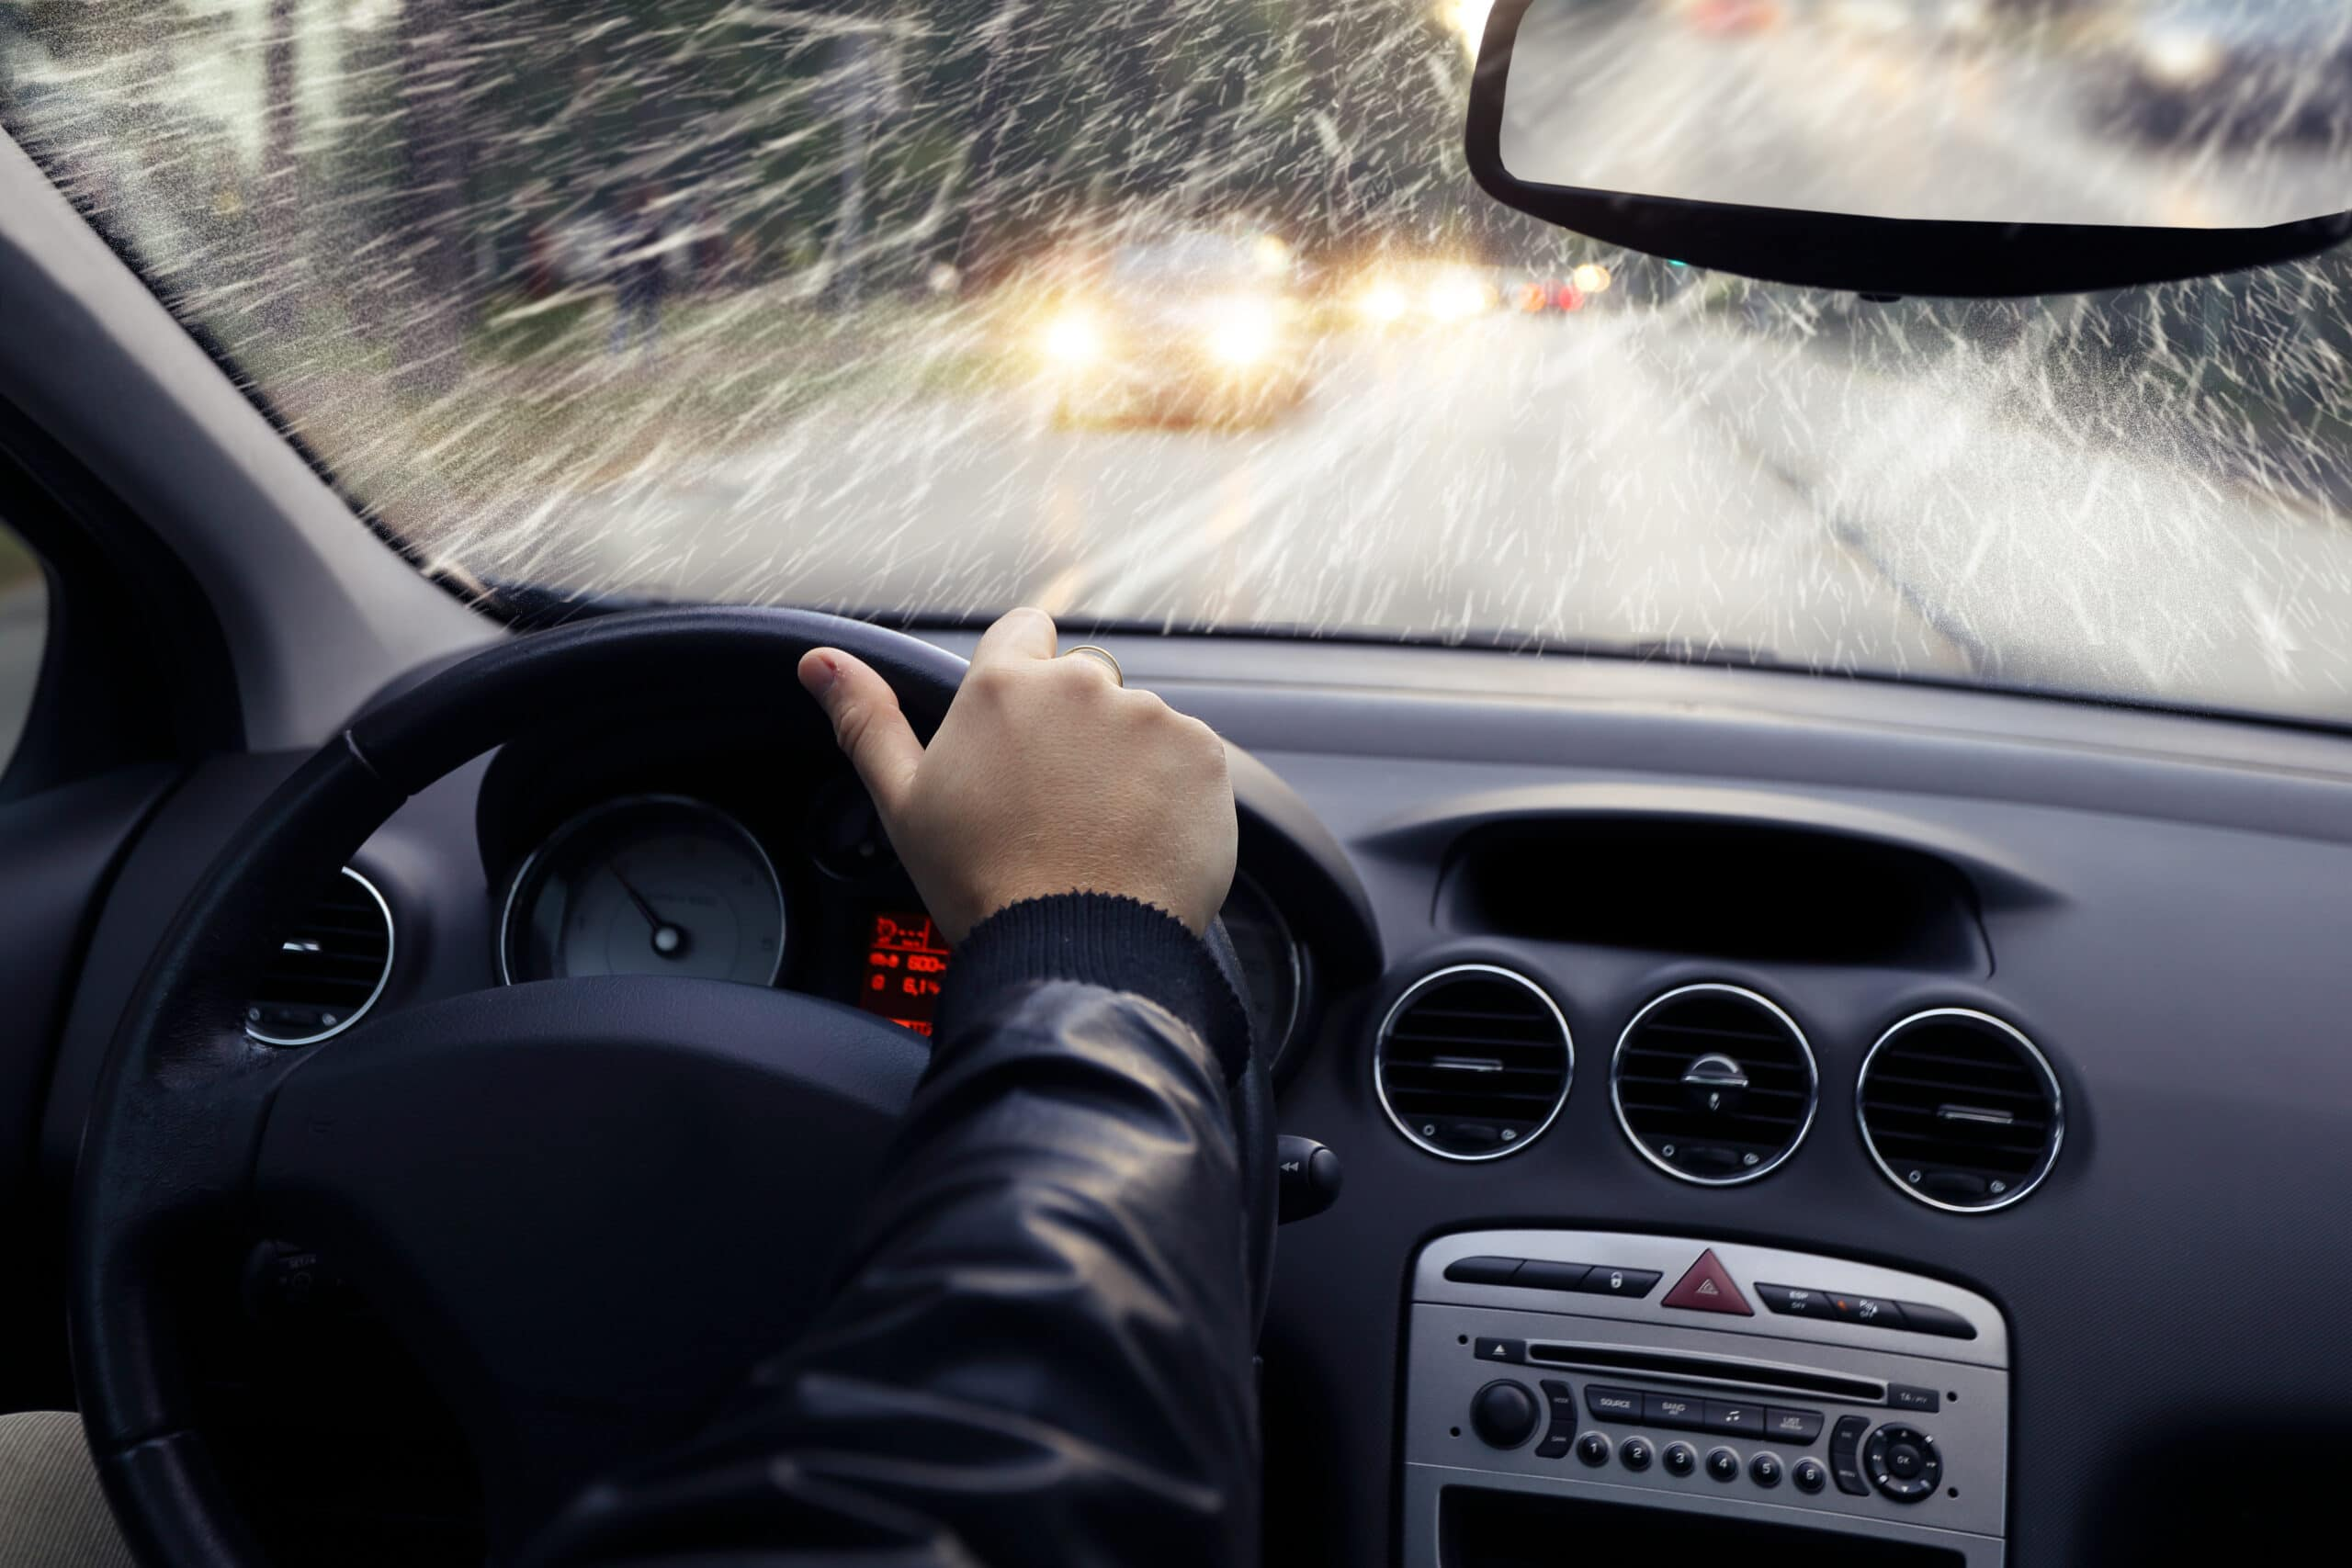 Driver navigates vehicle from behind the wheel in falling rain and snow